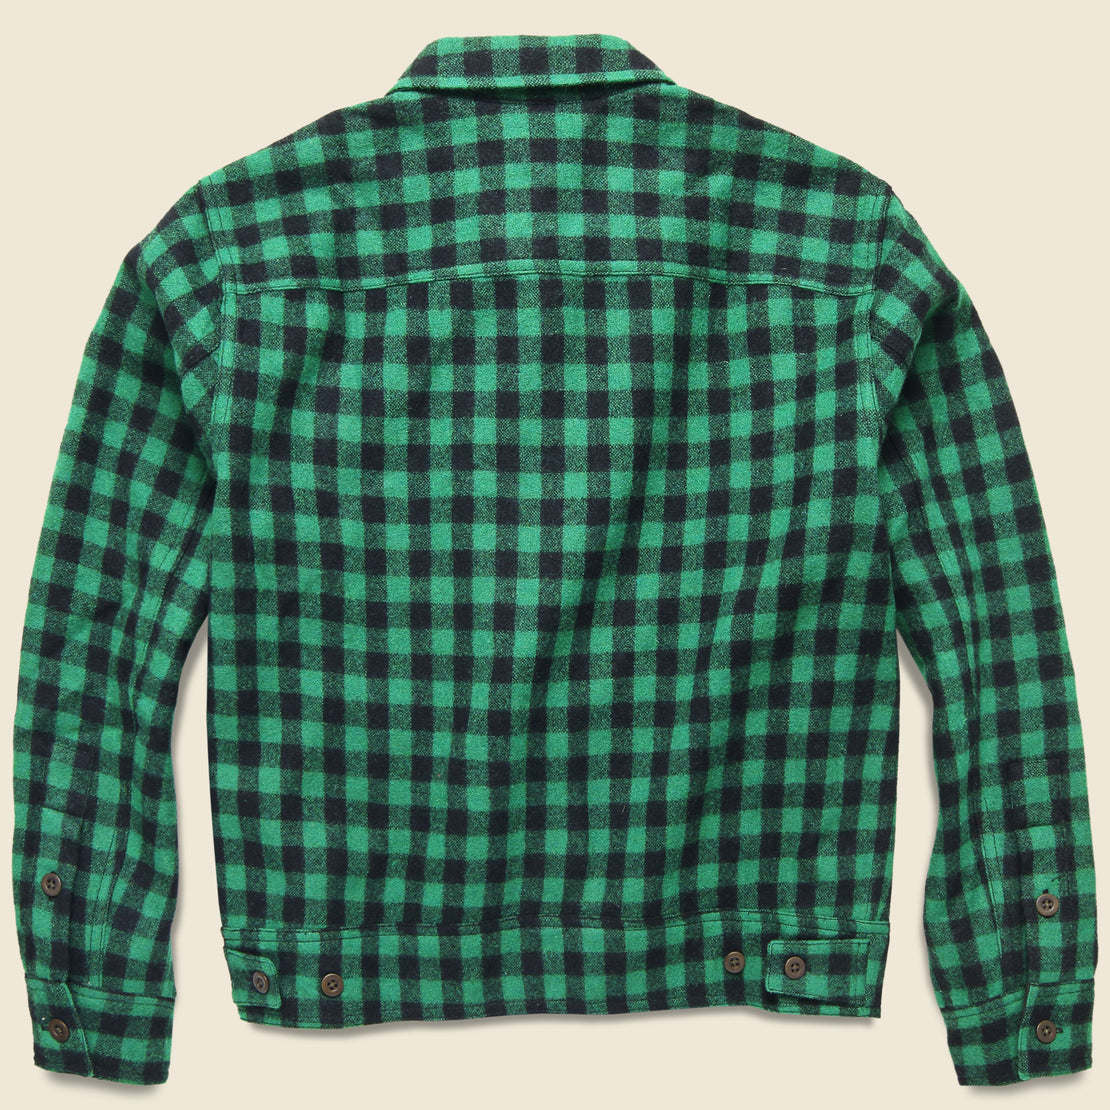 Strongbuilt Wool Check Overshirt - Green/Black